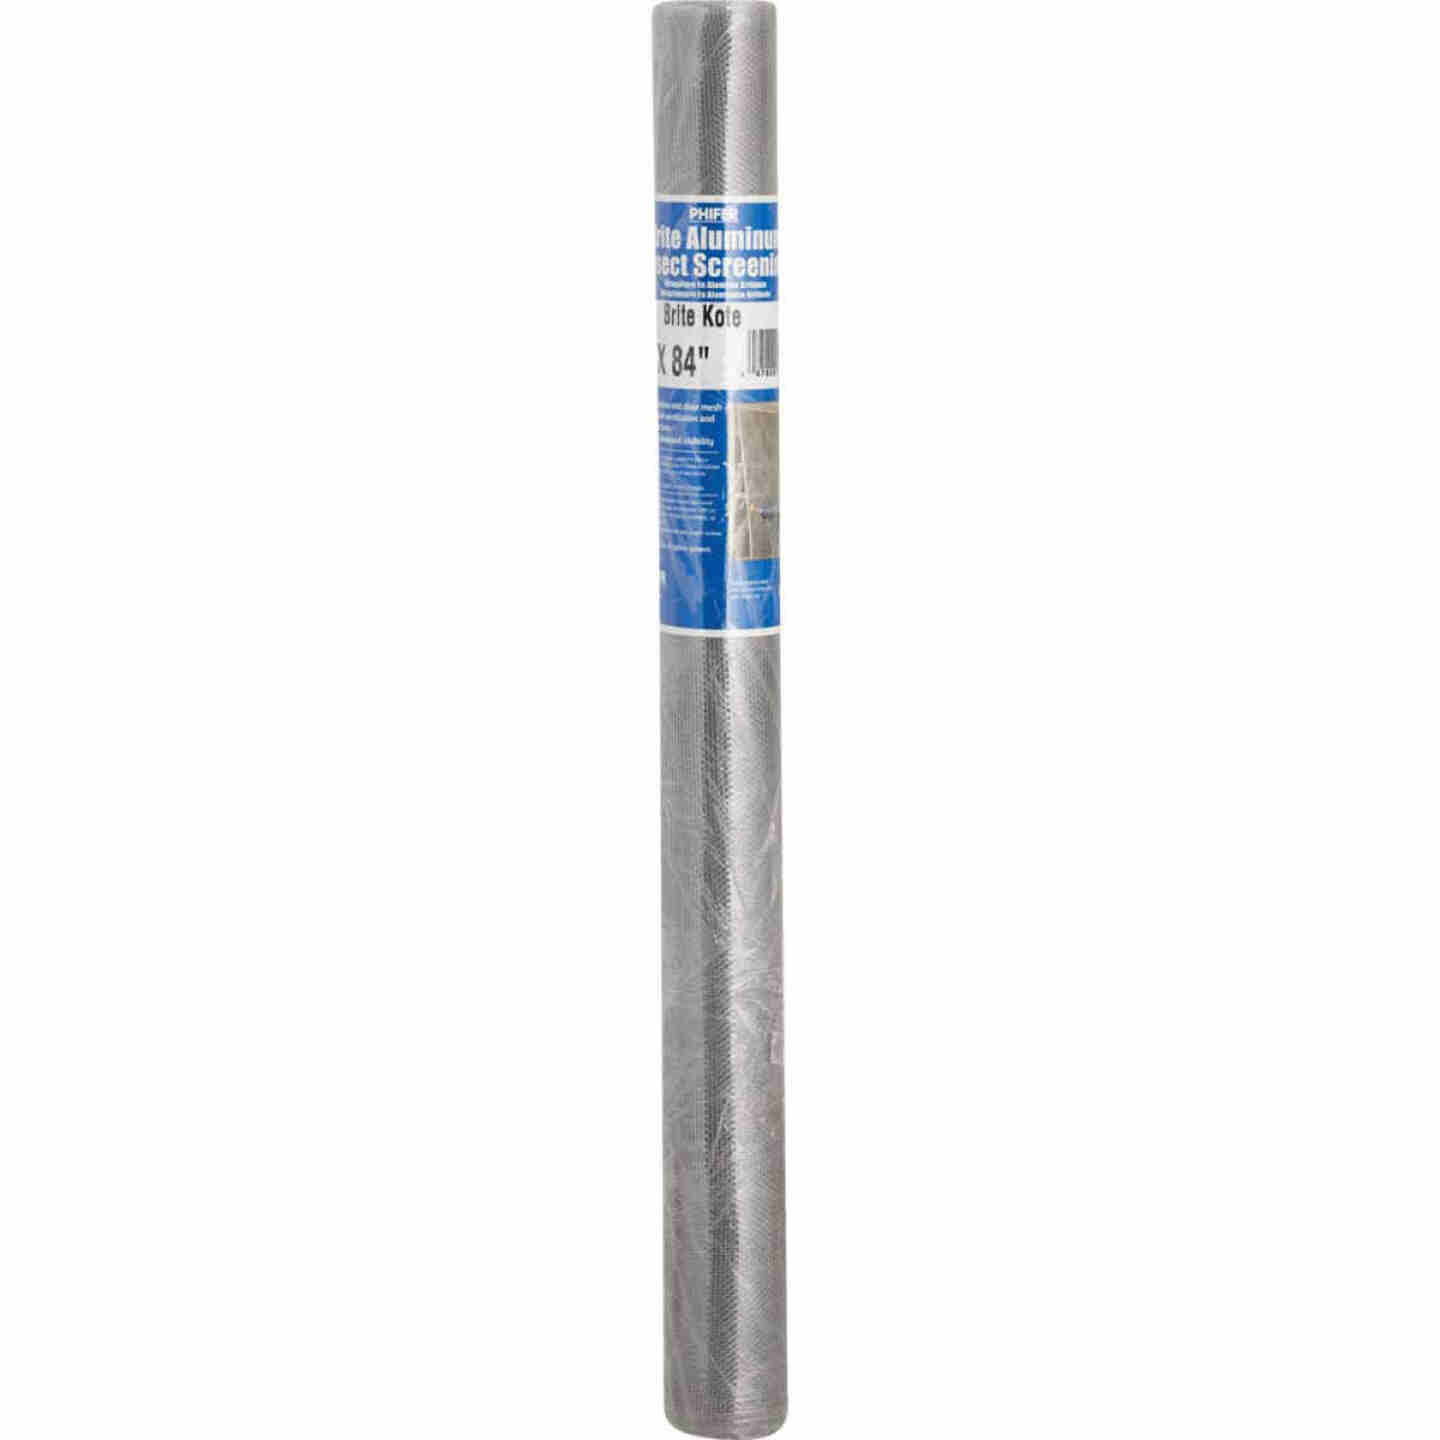 Phifer 24 In. x 84 In. Brite Aluminum Screen Ready Rolls Image 2